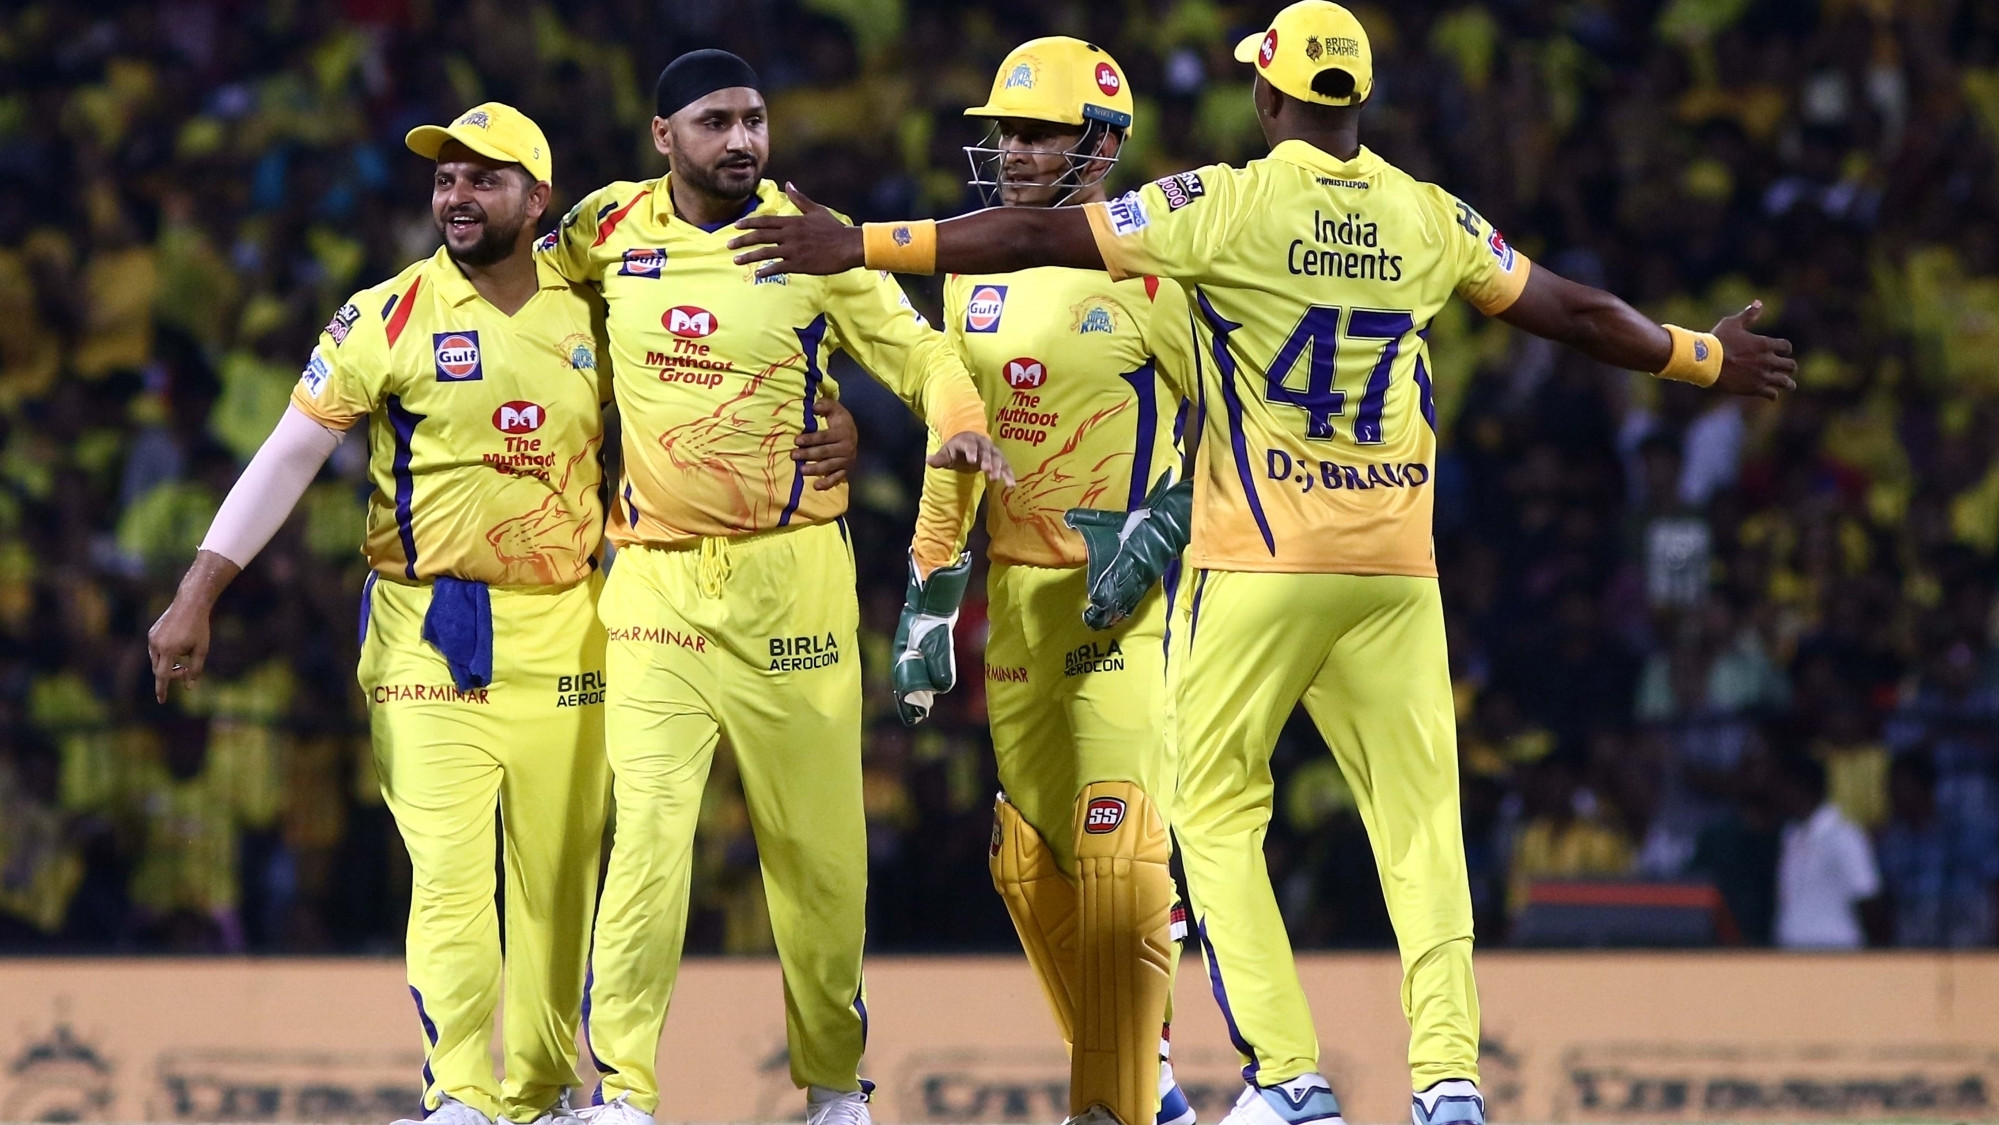 IPL 2019: Twitter reacts to CSK's resounding win over RCB in the tournament opener